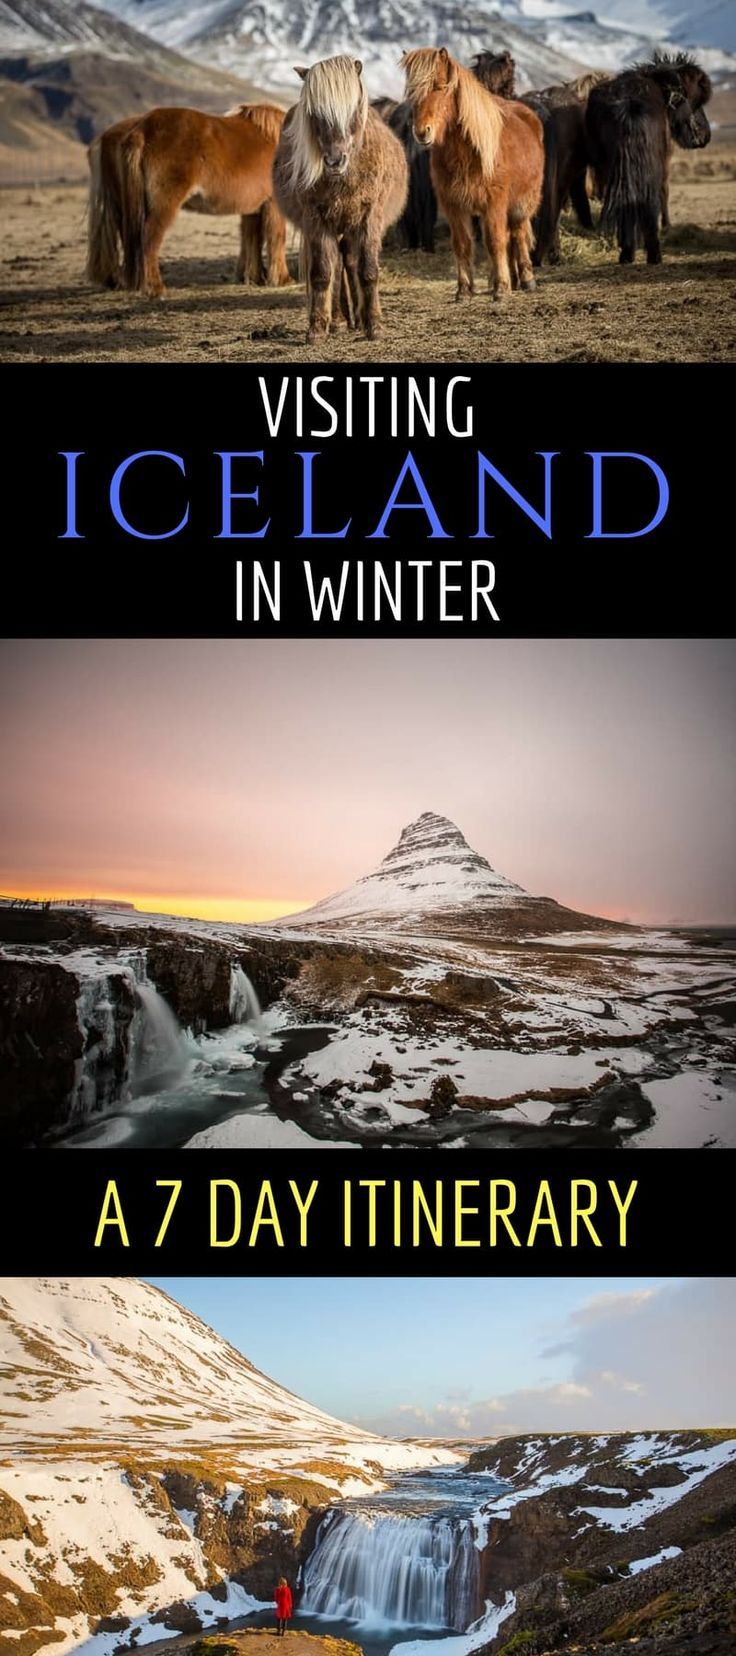 A comprehensive guide and 1 week itinerary to visiting Iceland in winter. The 7 day guide gives detailed day-to-day suggestions and a a guide if you are self driving. Also gives packing tips, budget tips, and tour tips. #Iceland #Icelandtrip #Icelanditinerary #wintertravel #travel #Icelandtravel